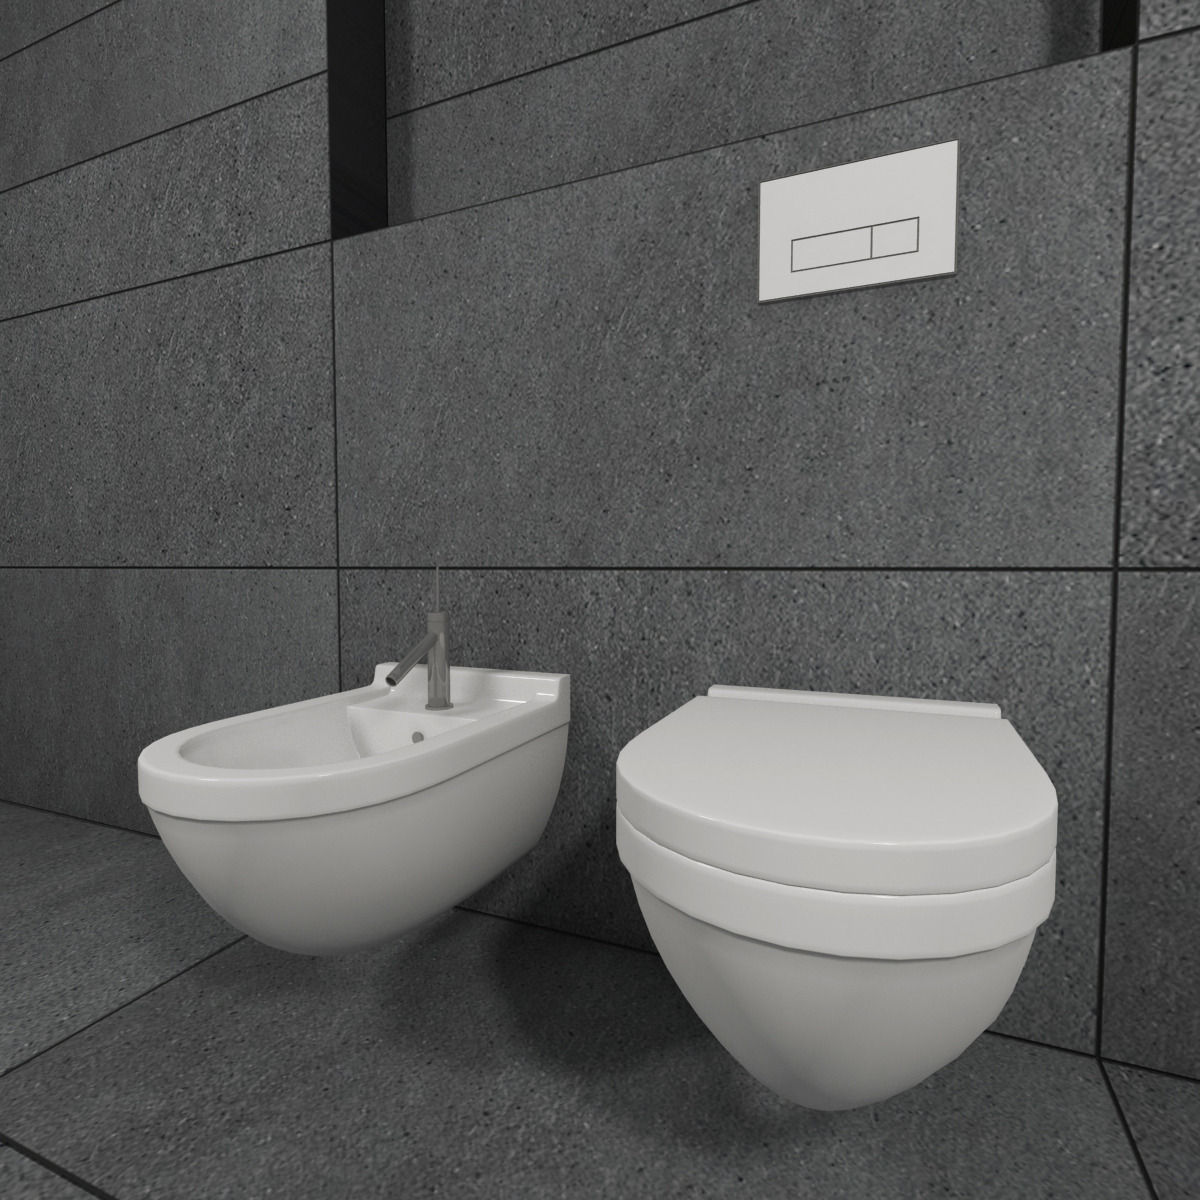 Hanging Commode: Toilet And Bidet Starck3 Hanging 3D Model .max